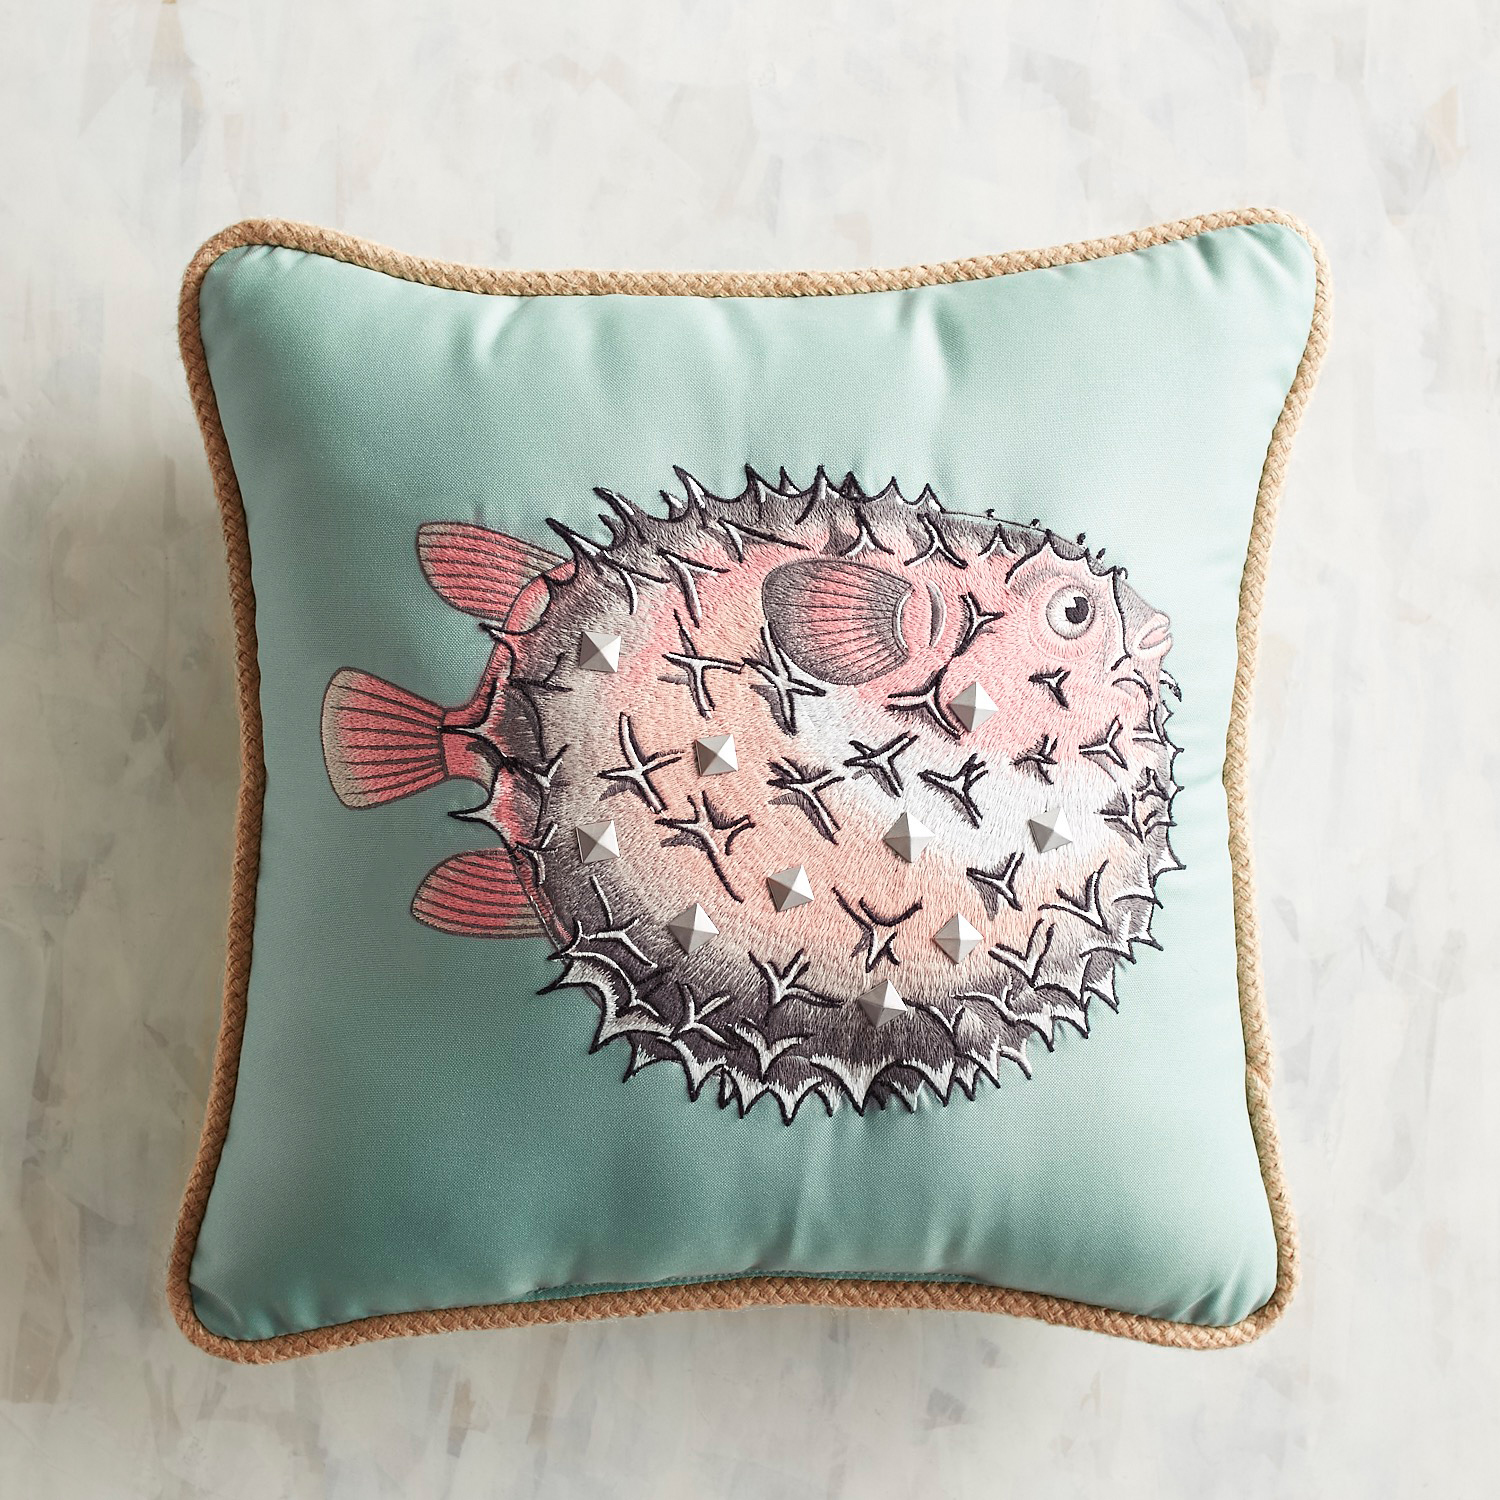 Embellished Puffer Fish Pillow